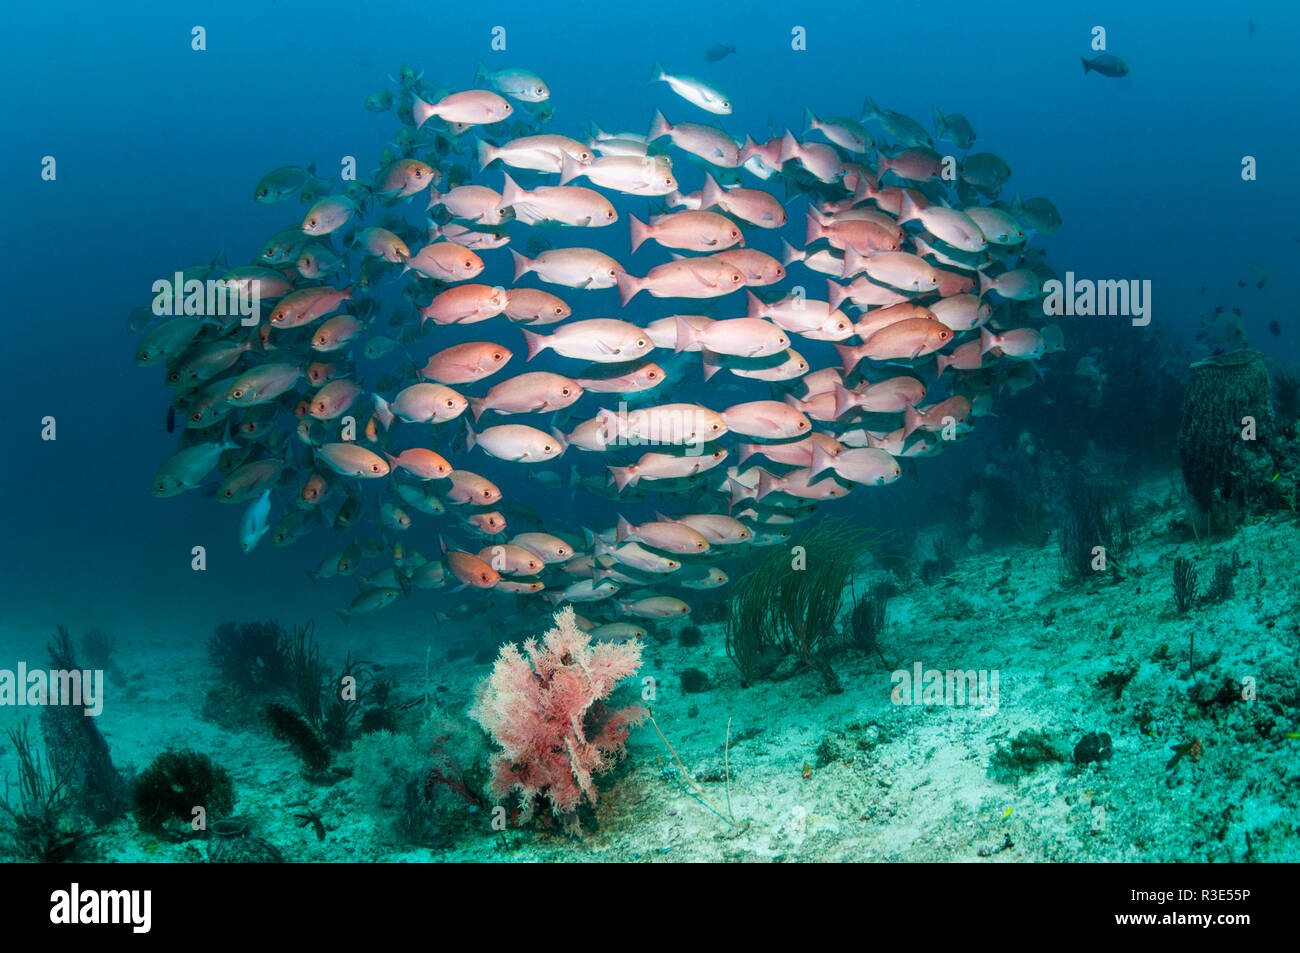 Shoal of Slender pinjalo snappers, White-spot pinjalo snapper or Red pinjalo [Pinjalo lewisi.  West Papua, Indonesia. Stock Photo